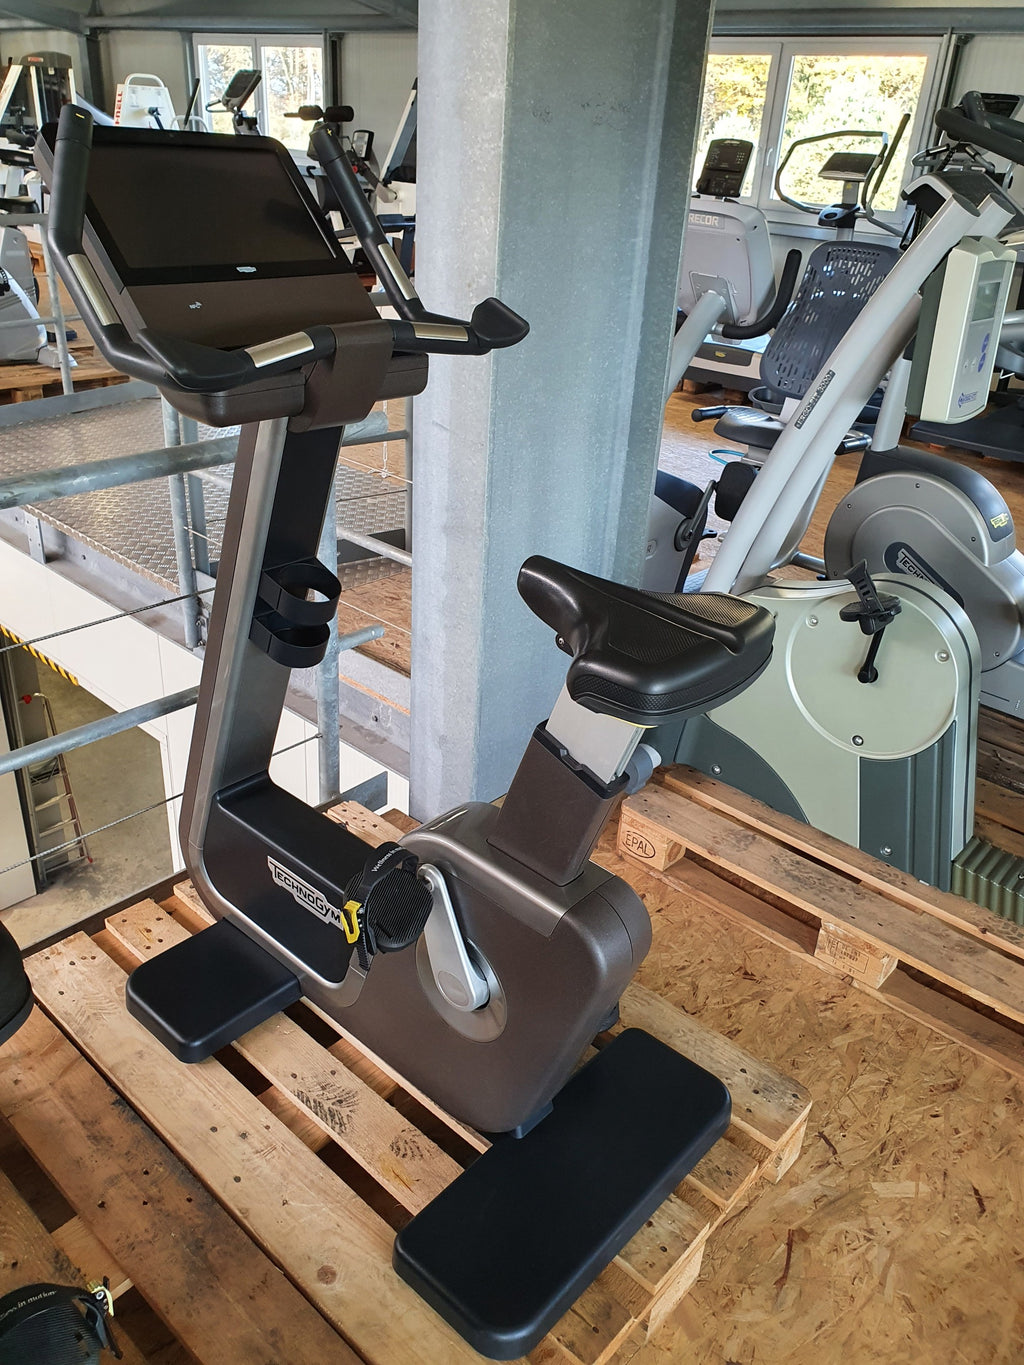 TECHNOGYM ARTIS Unity Upright Bike Fahrrad Ergometer Fitness Studio Gym